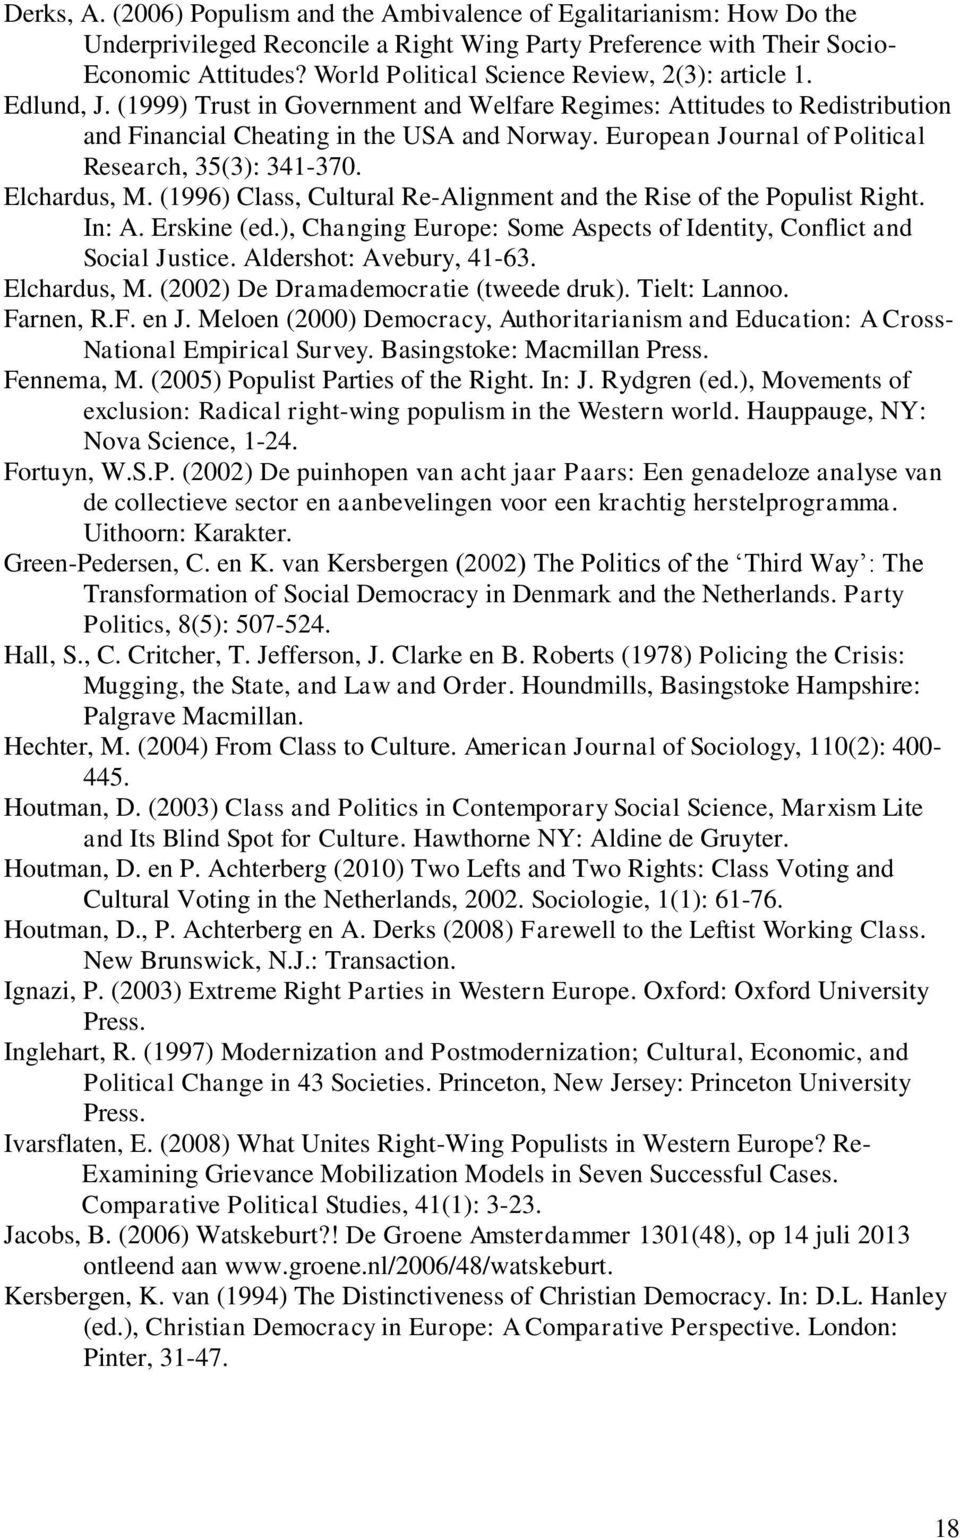 European Journal of Political Research, 35(3): 341-370. Elchardus, M. (1996) Class, Cultural Re-Alignment and the Rise of the Populist Right. In: A. Erskine (ed.